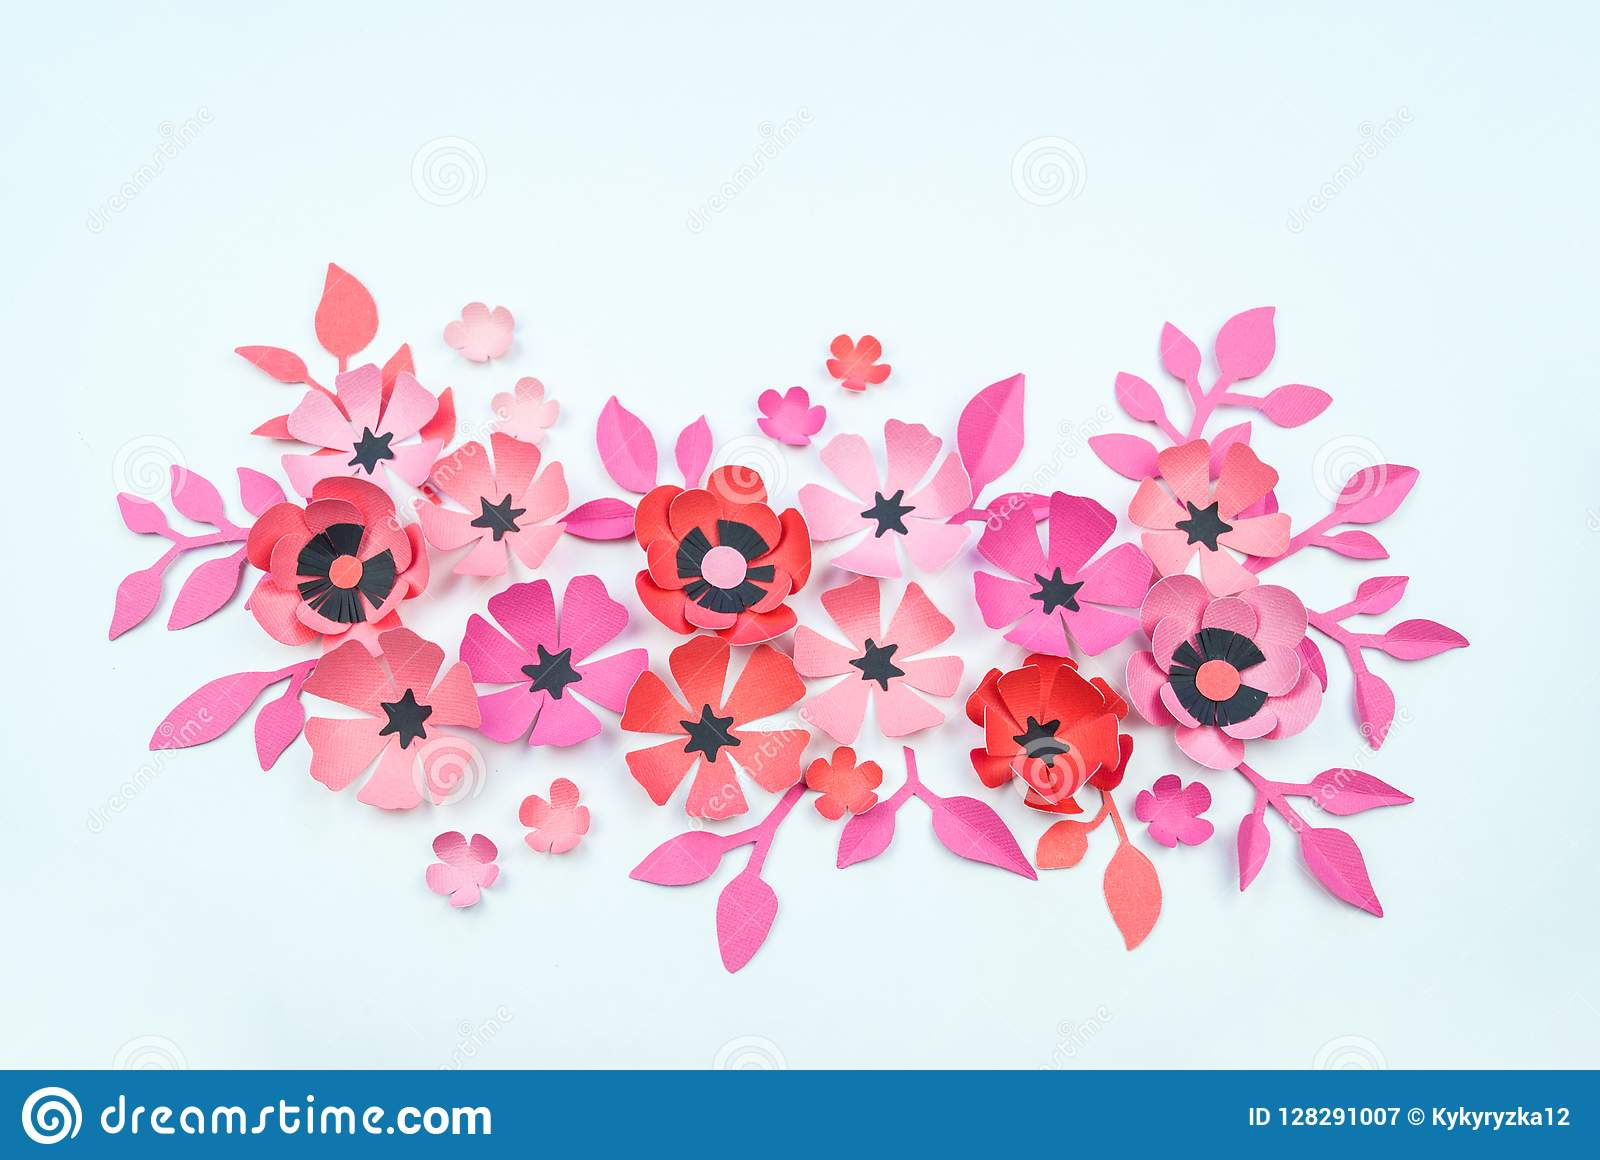 Flower And Leaf Pink And Black Color Made Of Paper Stock Image